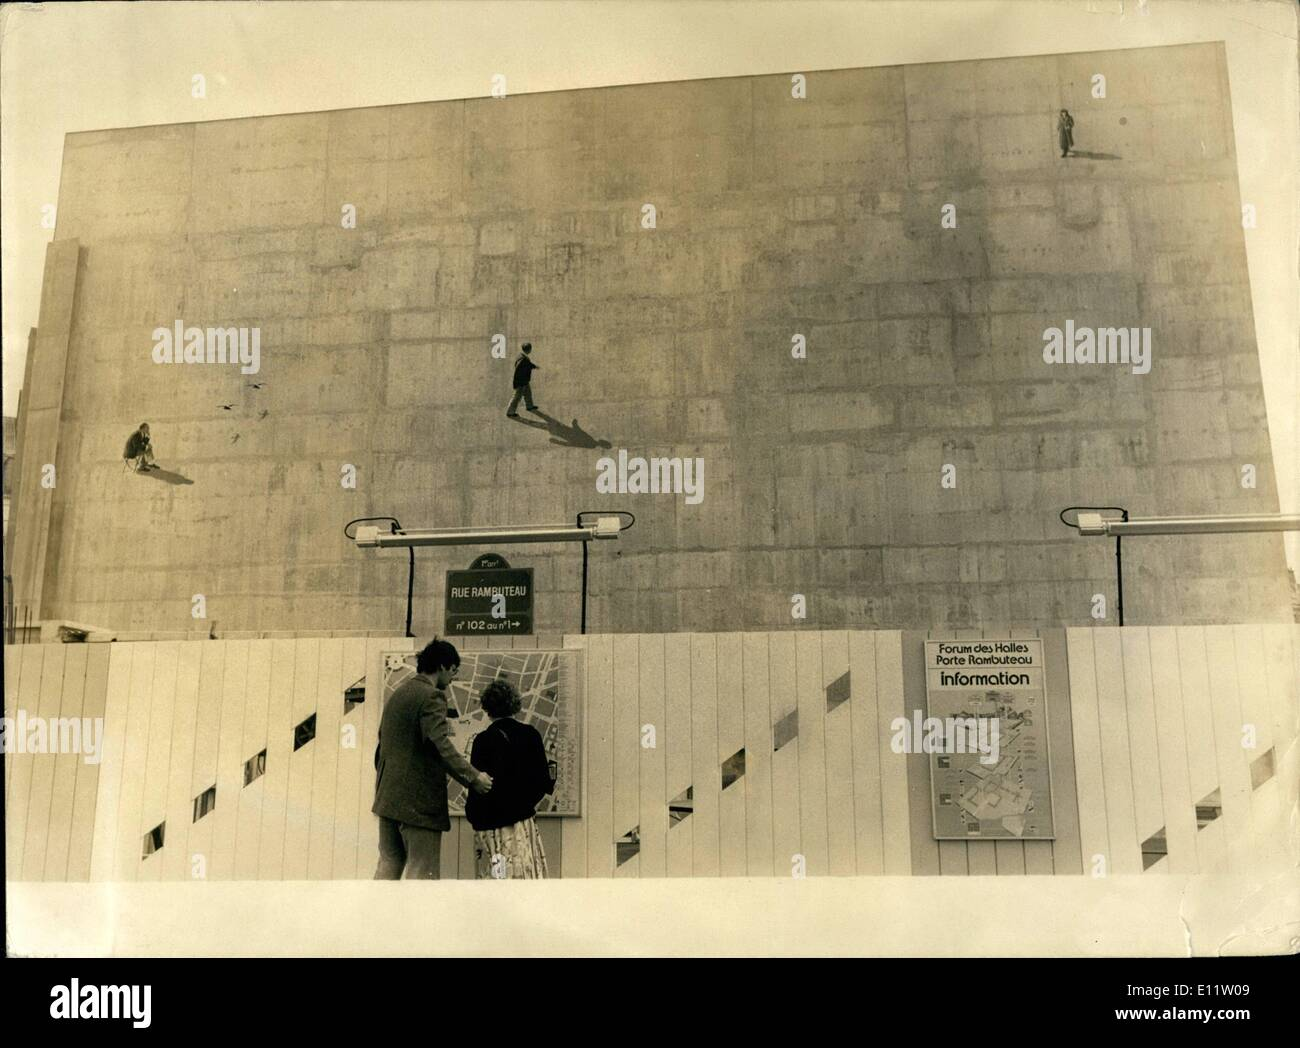 Jul. 07, 1980 - Fabio Rieti, an Italian painter, just added a third person to the wall of Beton at the Foreum des Halles: a sitting man, his self-portrait that we will see alongside two other people, a man who is walking and a woman. Paris's Lido Cabaret Presets Louis X - Stock Image